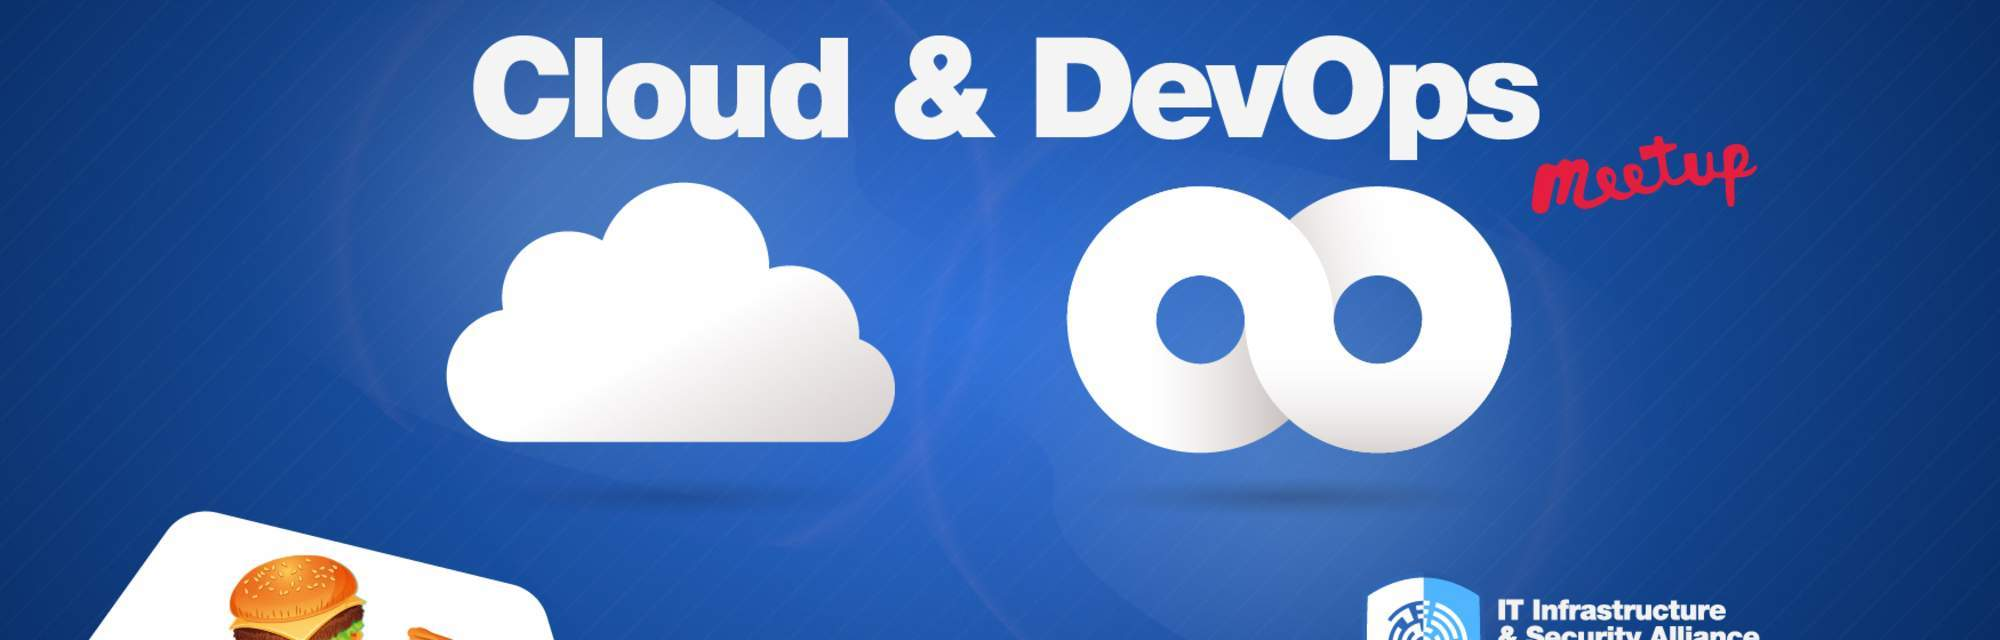 Event DevOps & Cloud Meetup banner